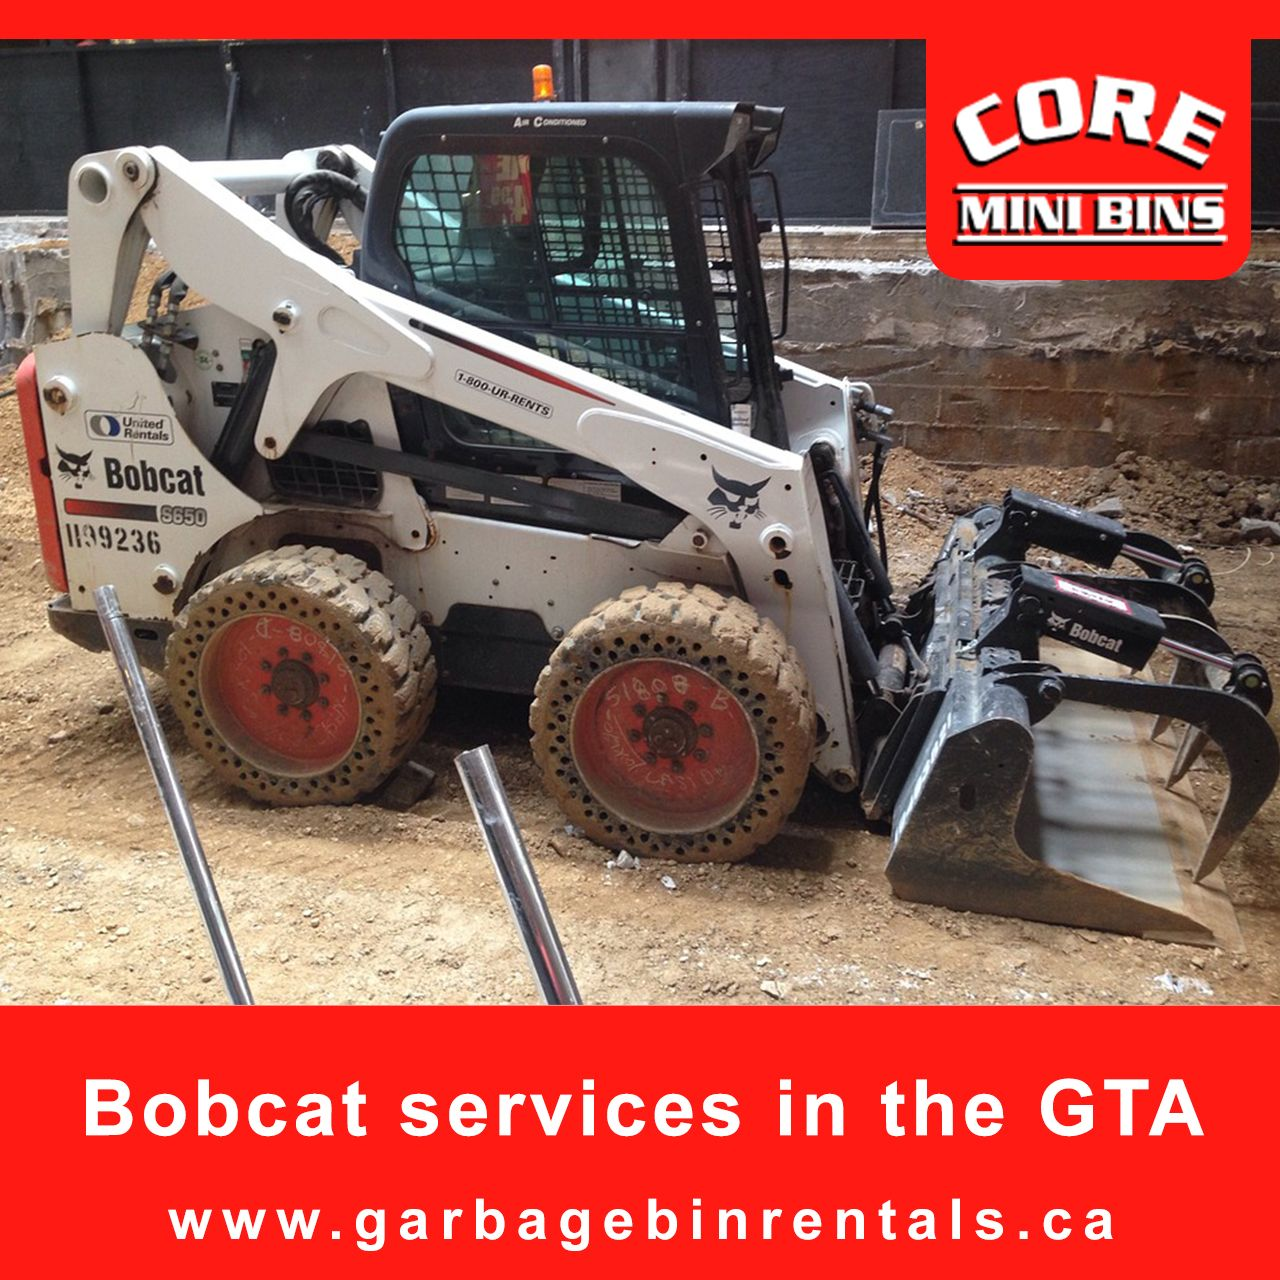 With the Bobcat, many complex tasks can be completed with